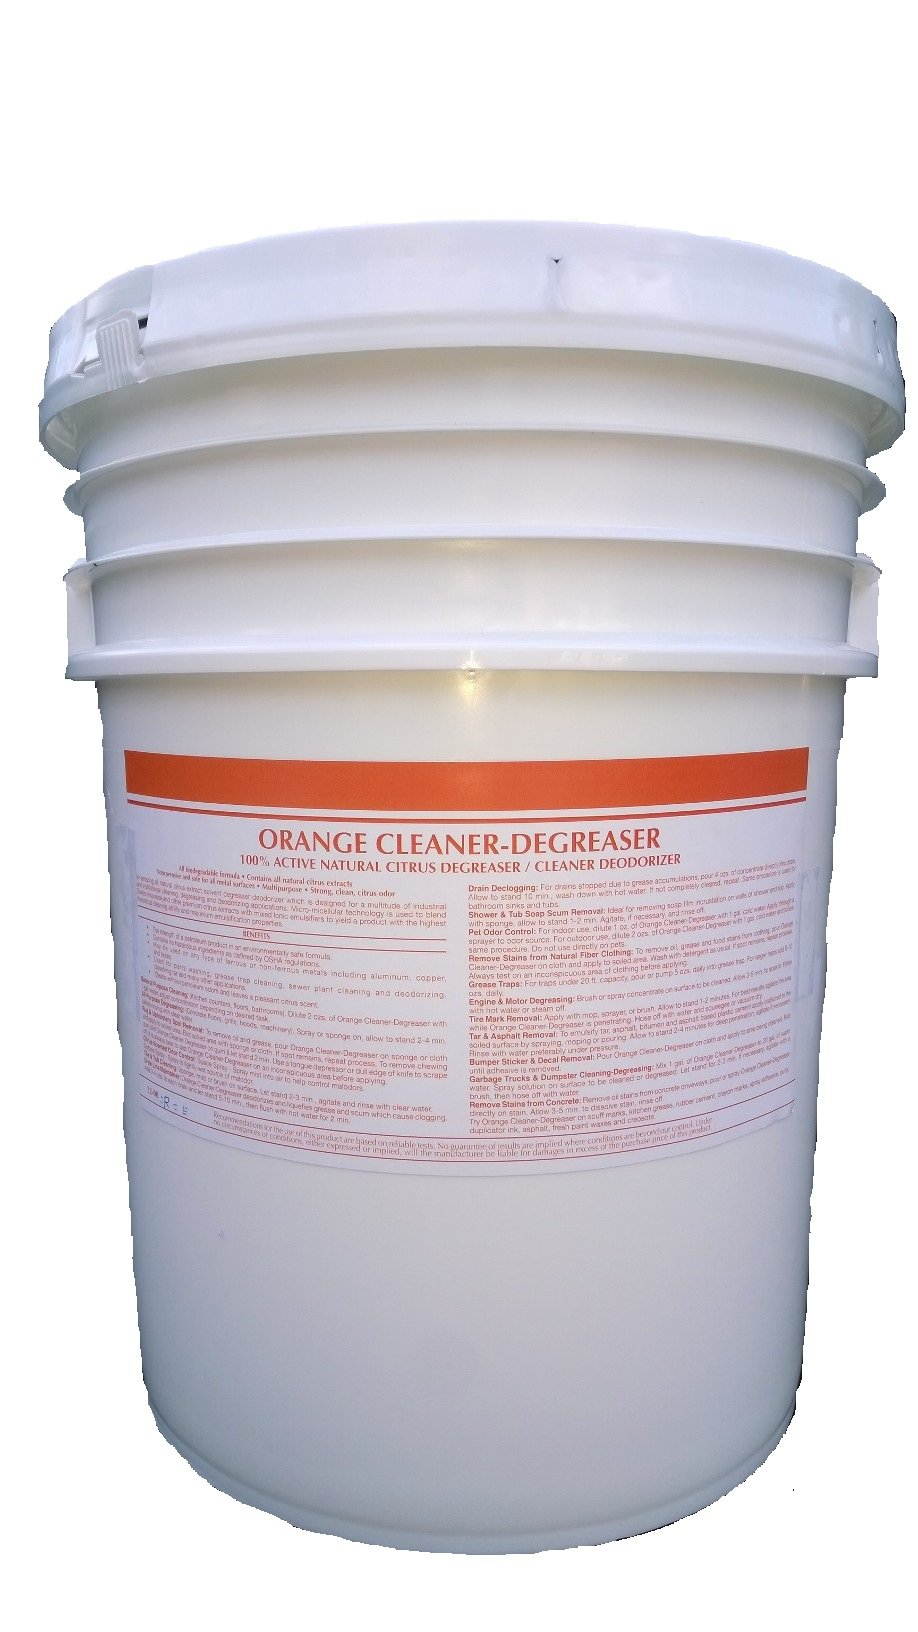 Patriot Chemical Sales 5 Gallon Pail Orange Cleaner Degreaser 100% Active Natural Citrus Degreaser Cleaner Deodorizer Concentrate Industrial Strength by Patriot Chemical Sales